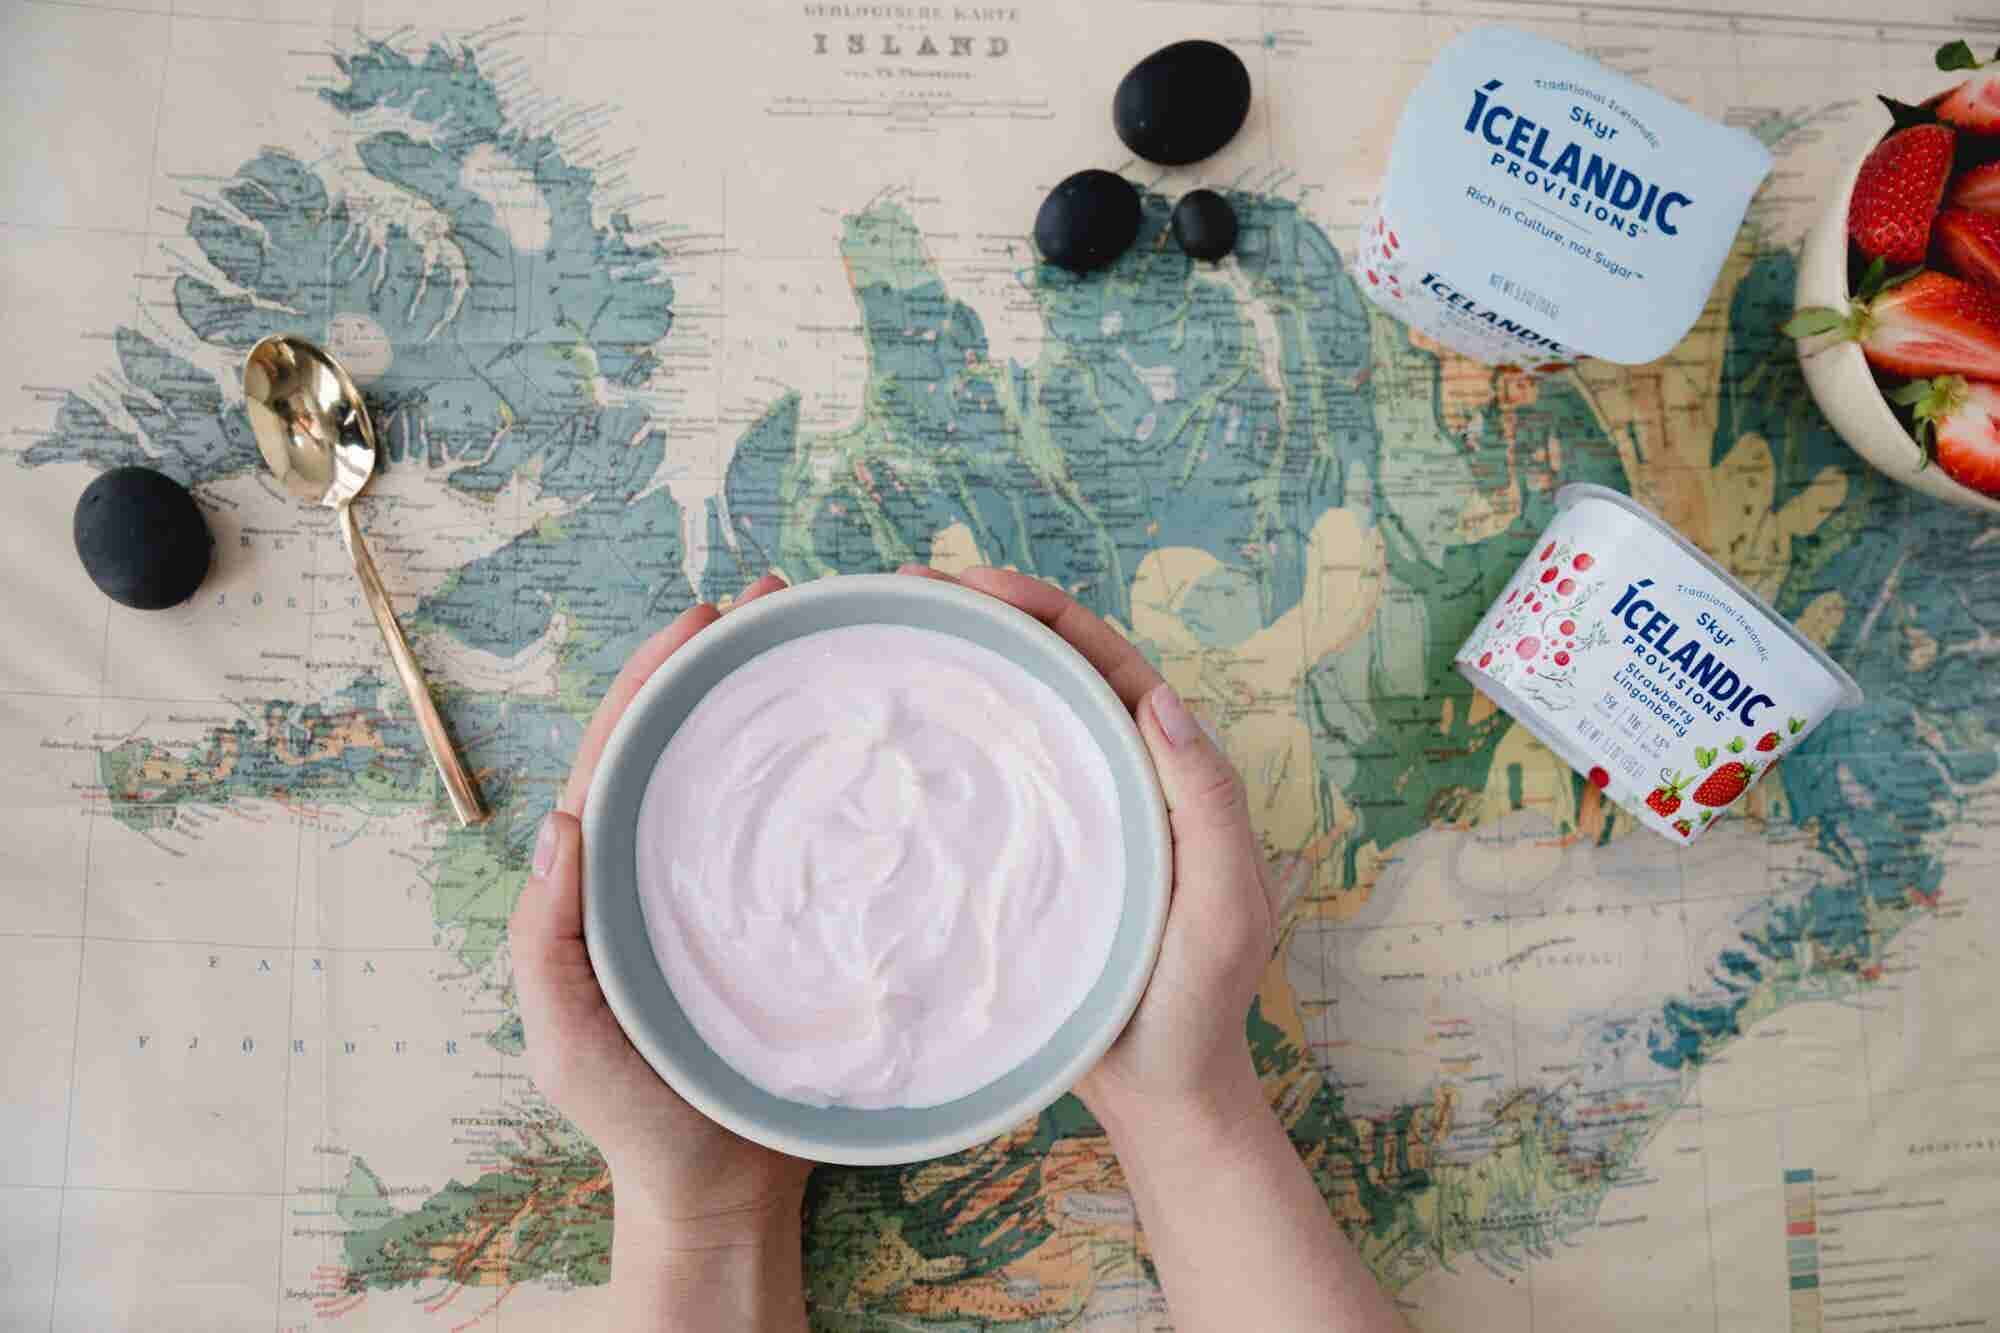 It Took 2 Years for This Entrepreneur to Convince an Icelandic Dairy Company to Partner Up on a Yogurt-Like Snack